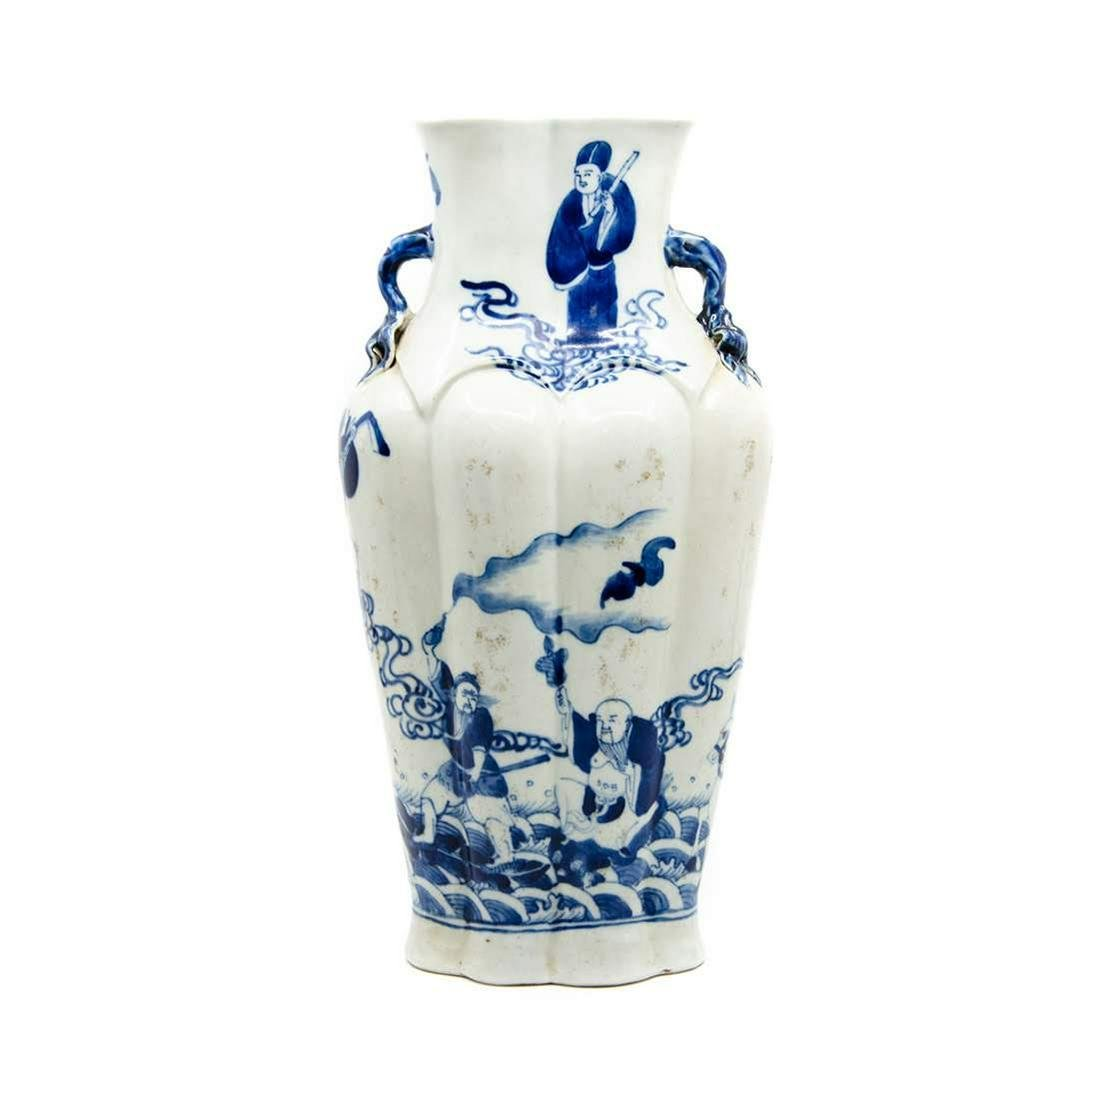 A Chinese Blue and White Ceramic Vase